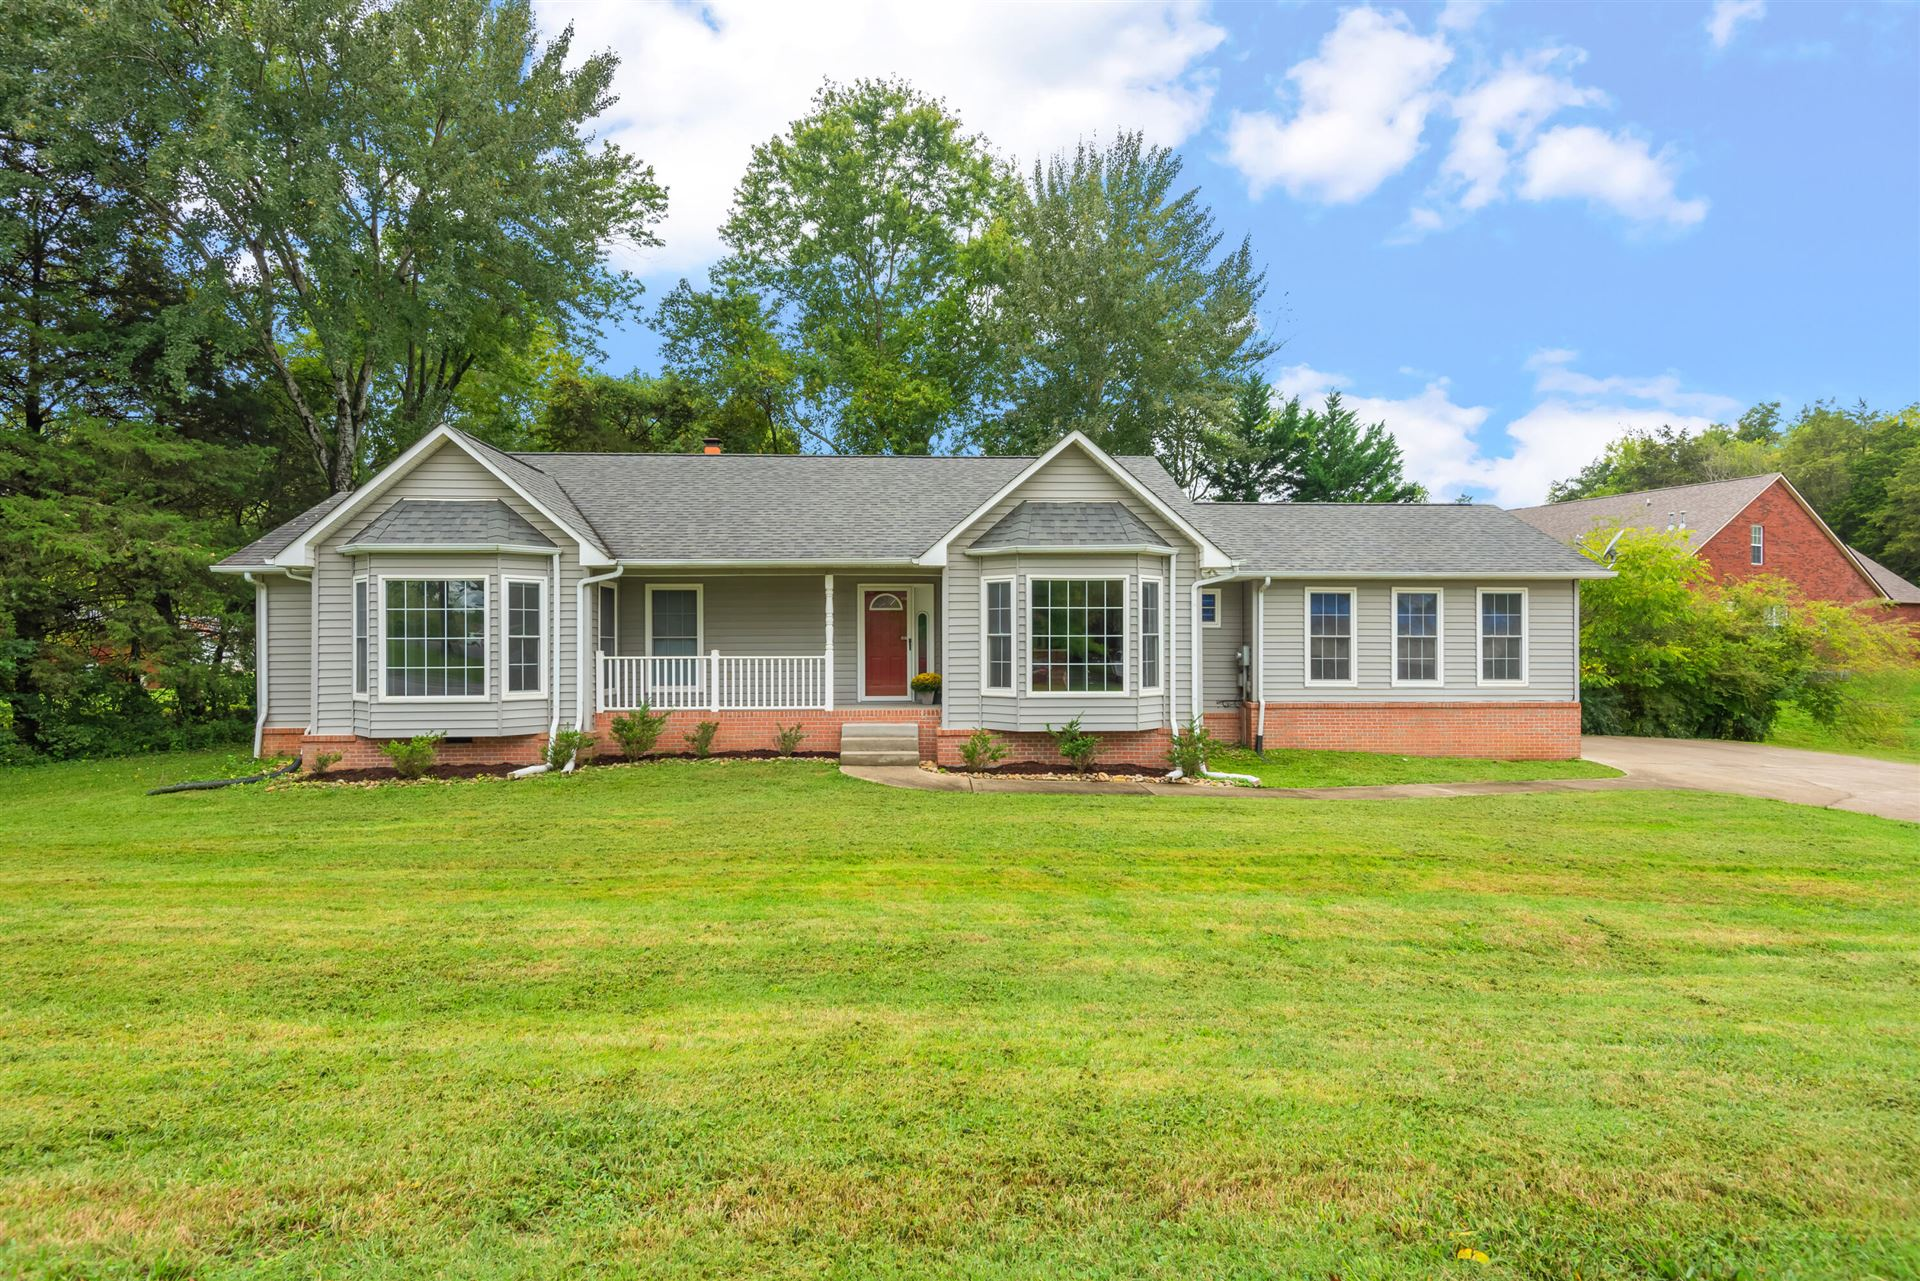 Photo of 7301 Old Clinton Pike, Knoxville, TN 37921 (MLS # 1168498)